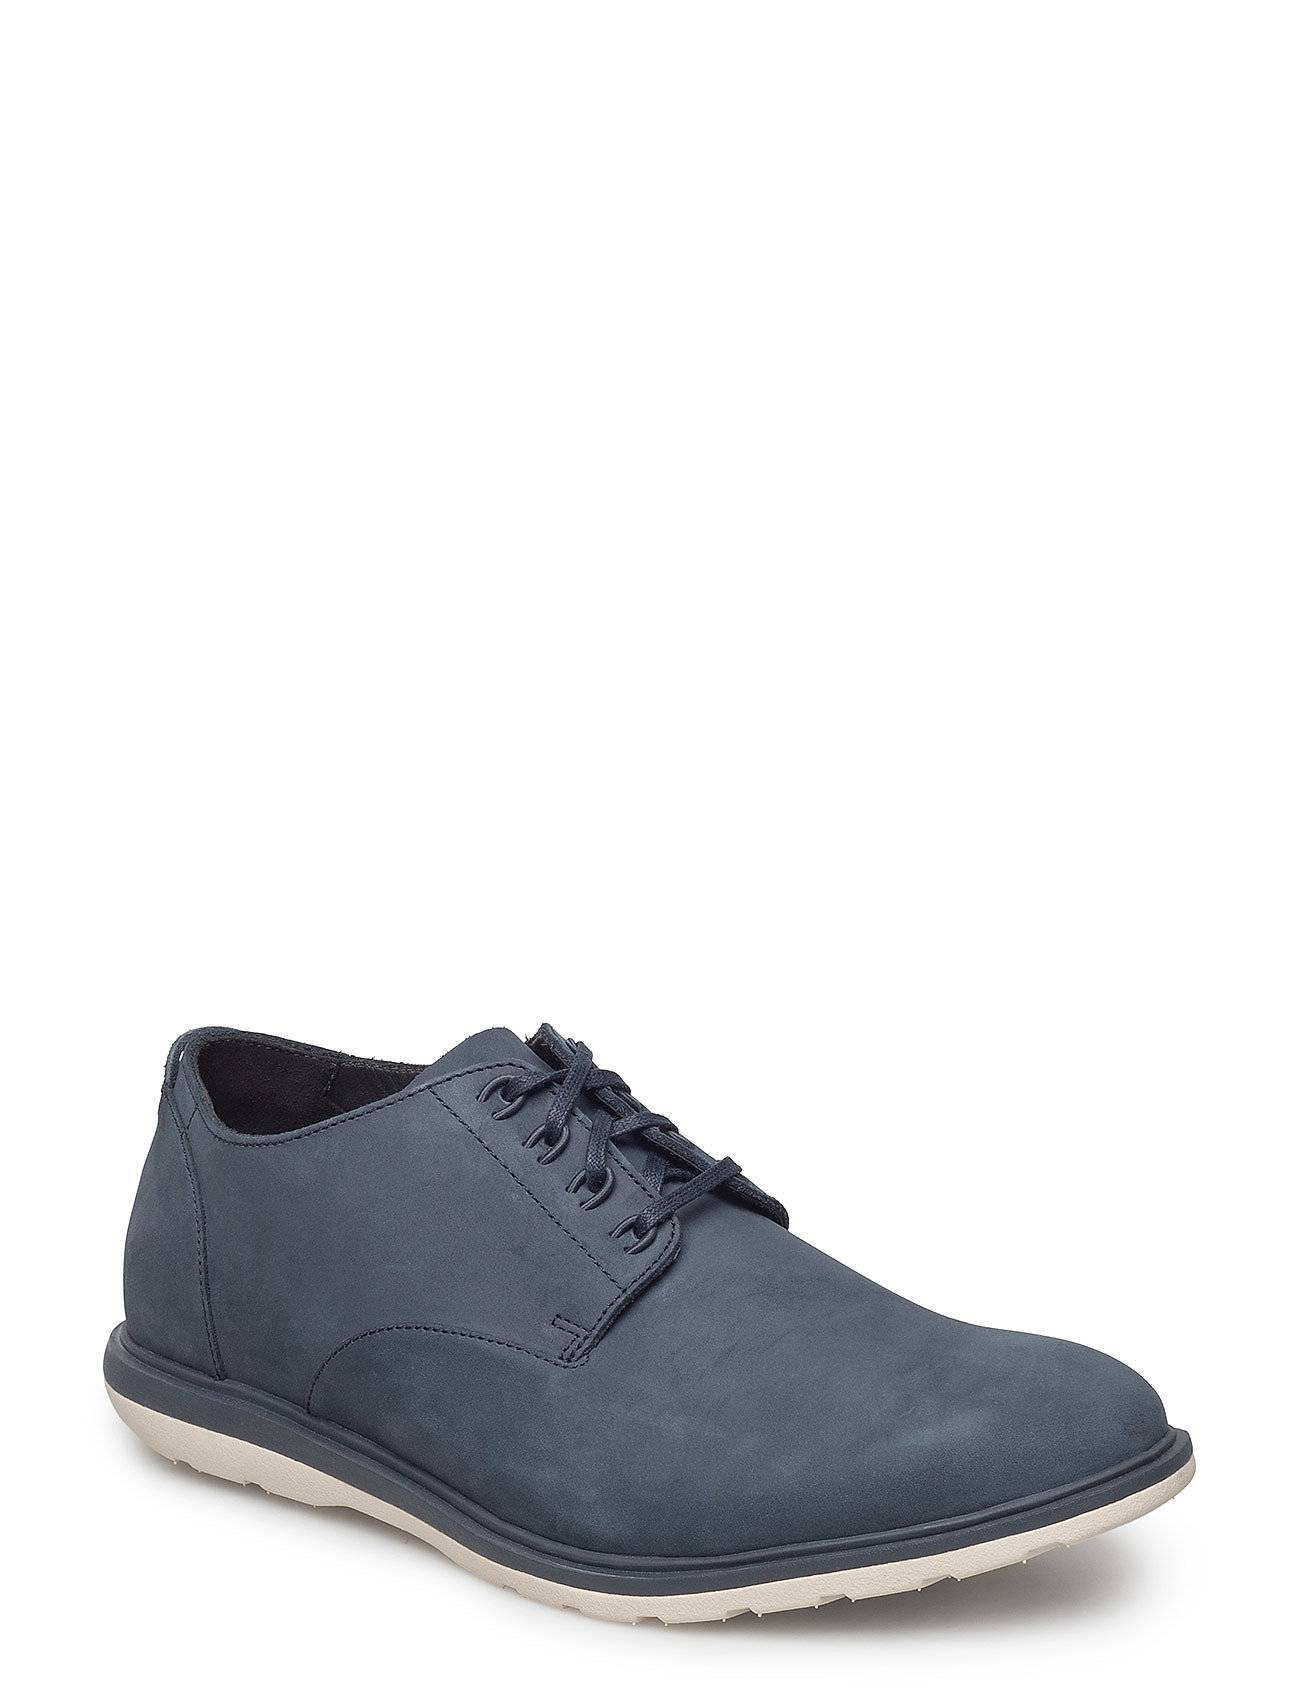 Clarks Glaston Walk